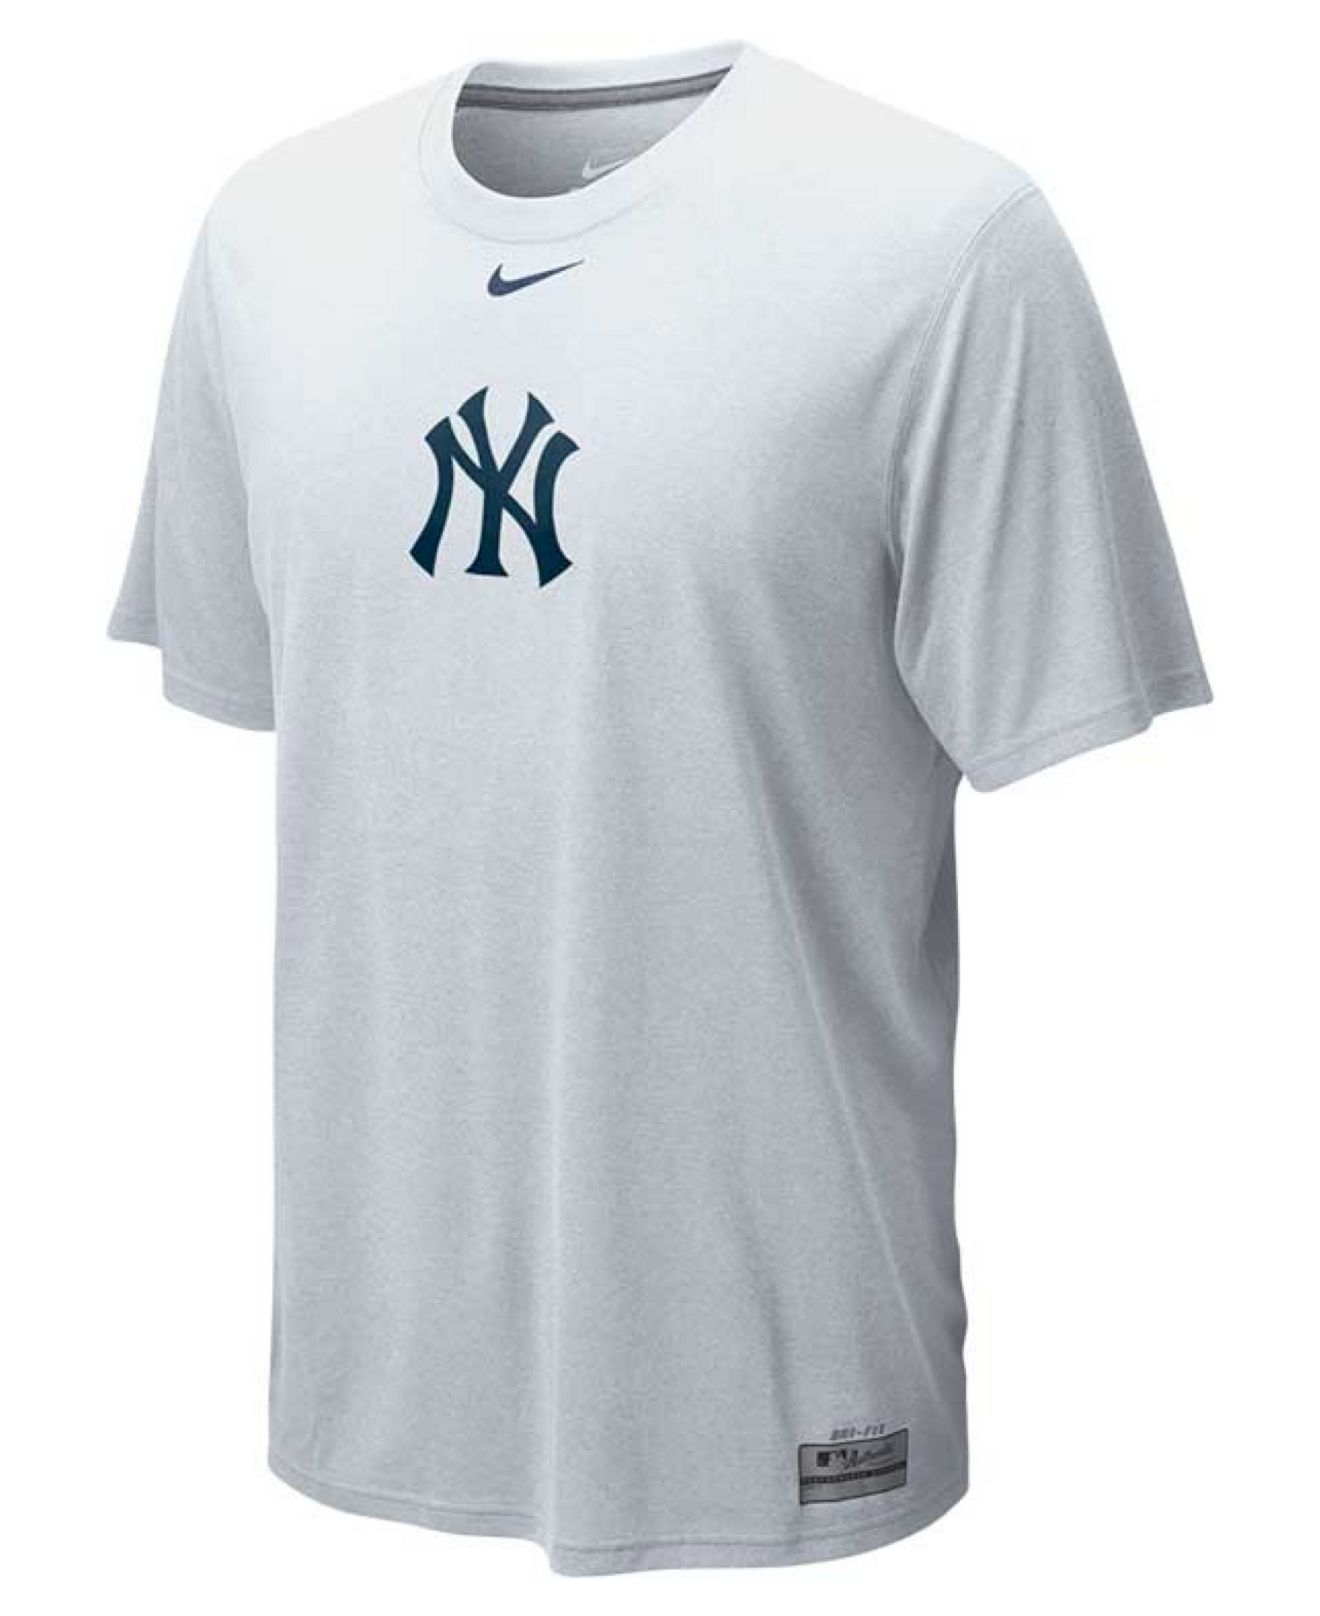 Lyst - Nike Men s New York Yankees Dri-fit Logo Legend T-shirt in ... 4a7f462dba8